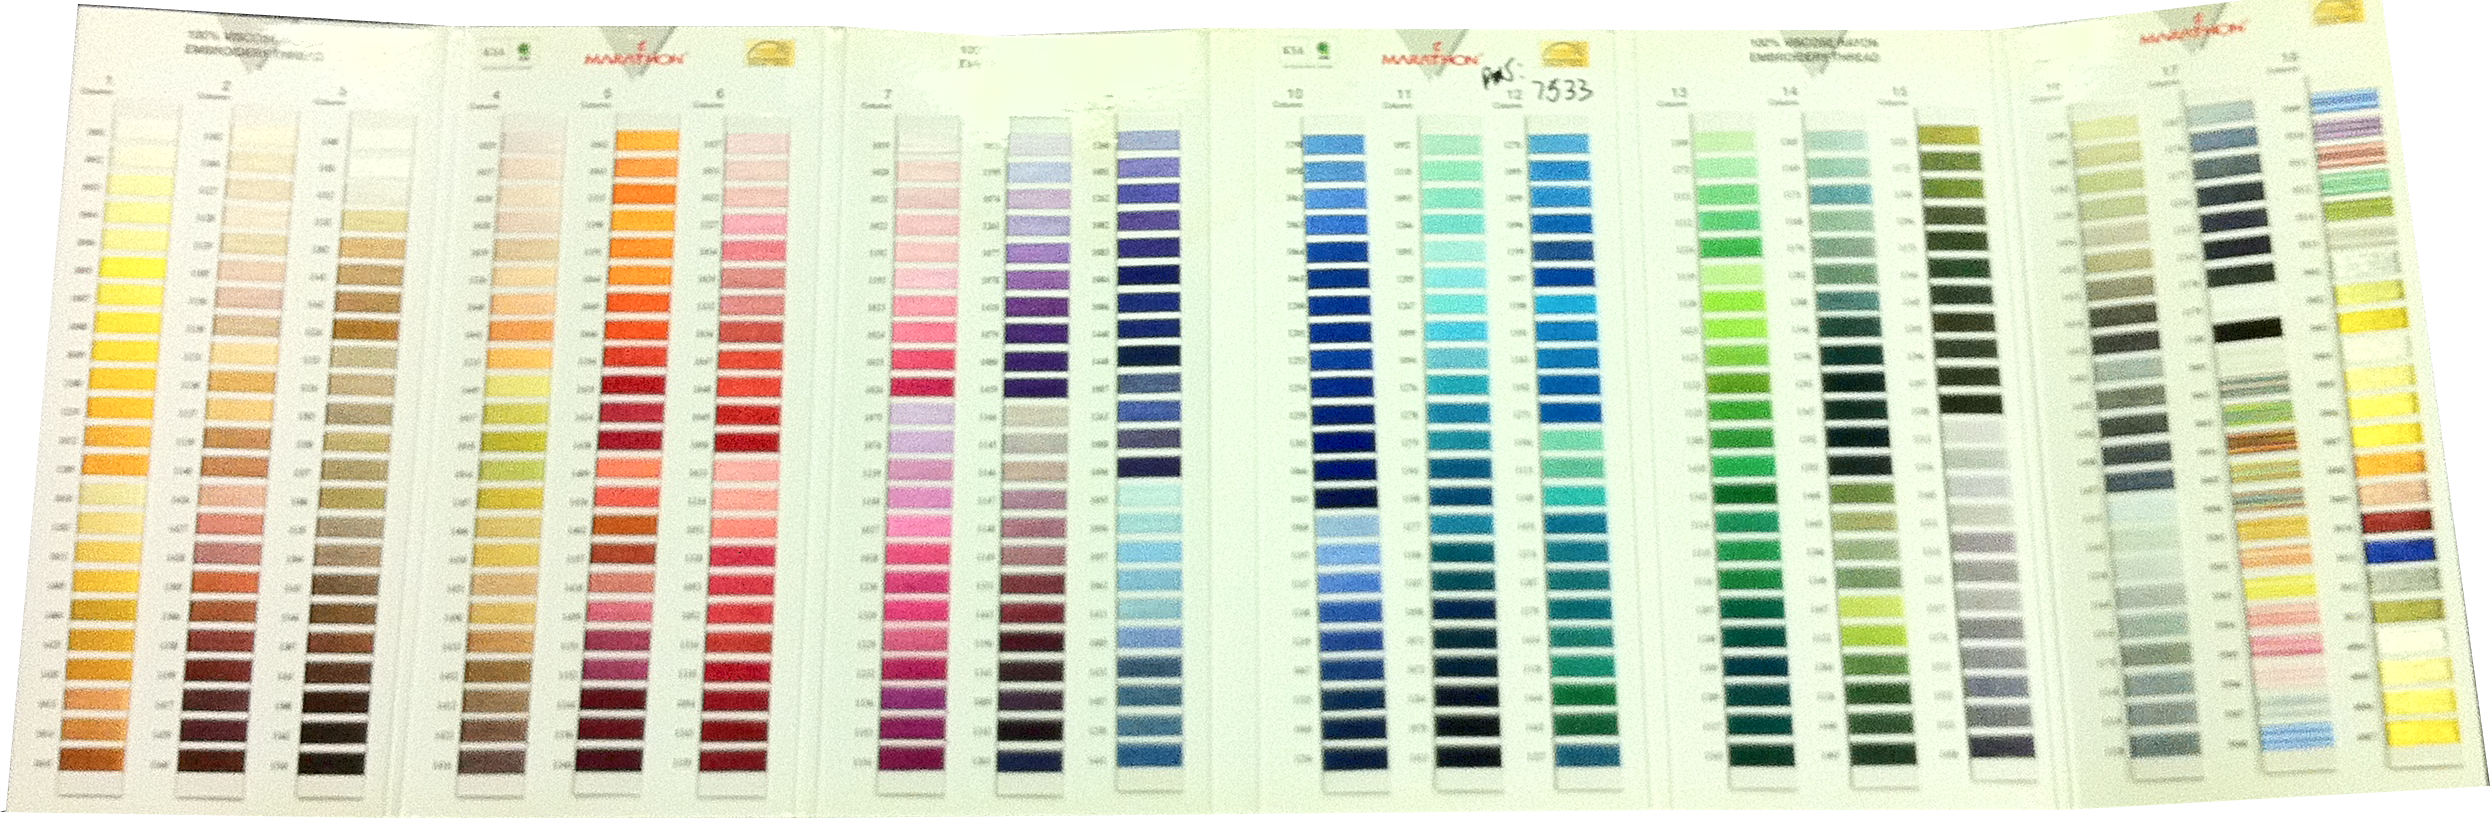 Pantone Color Book